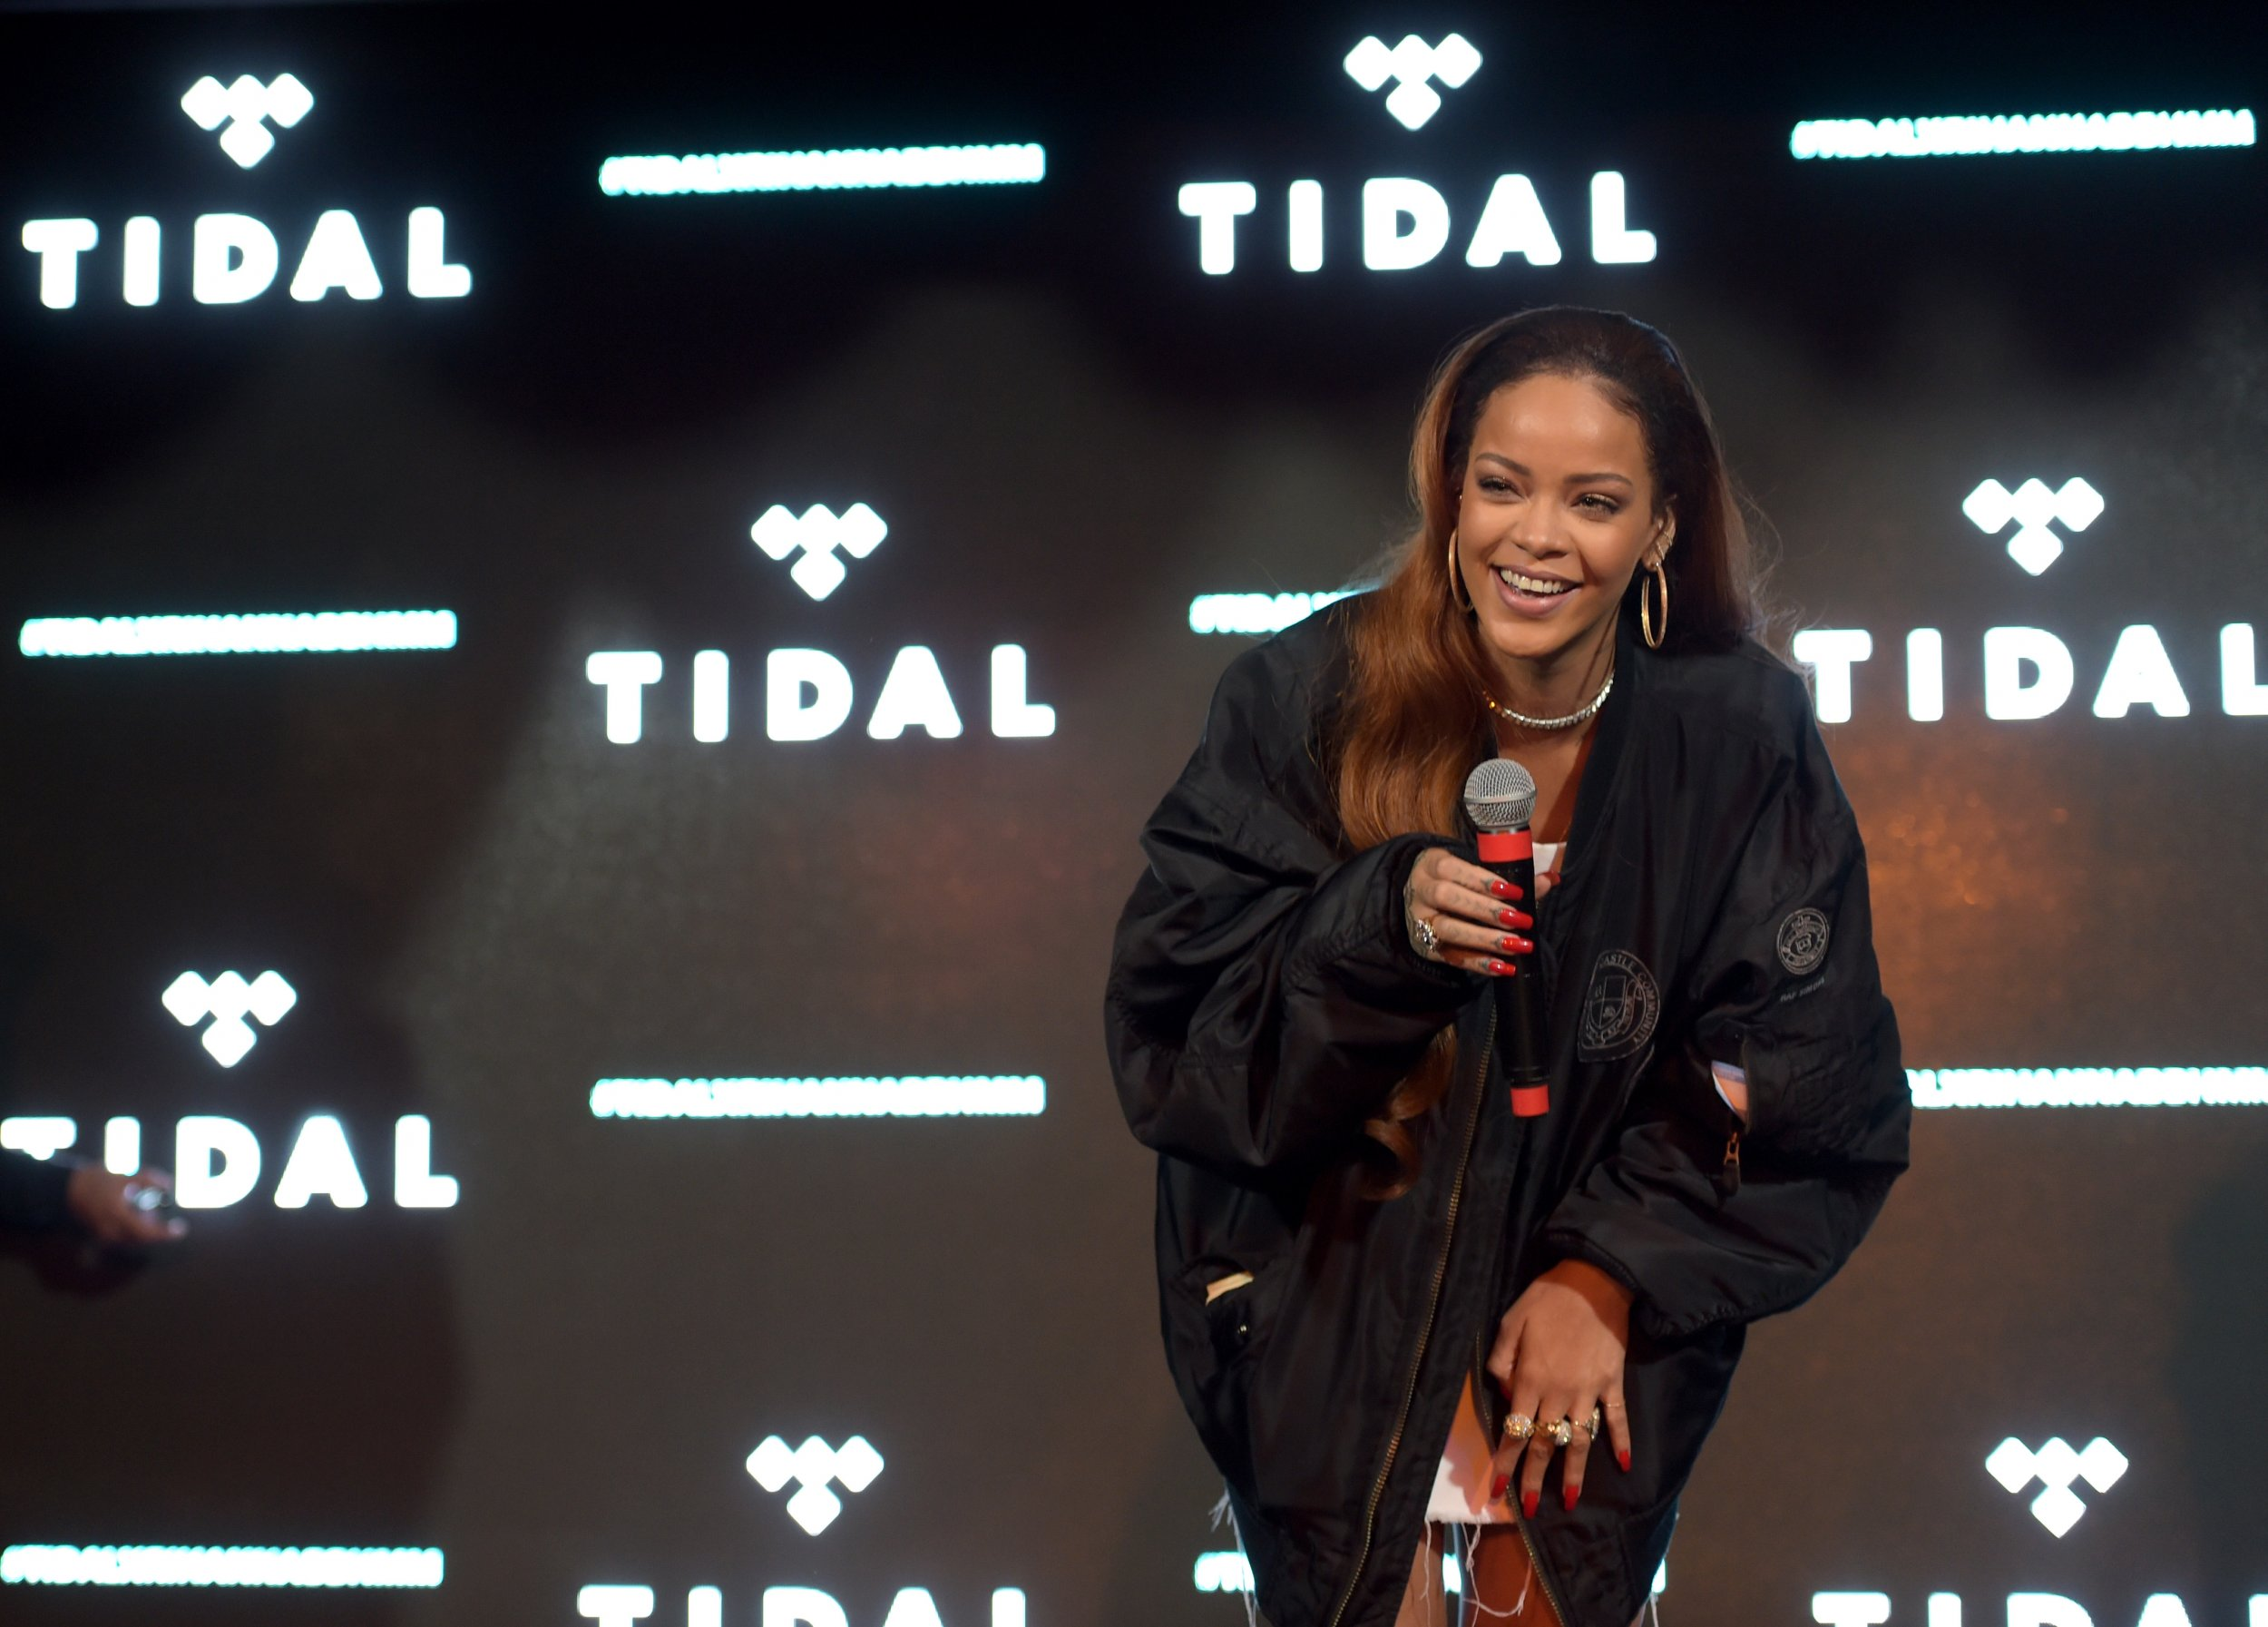 Rihanna at Tidal event